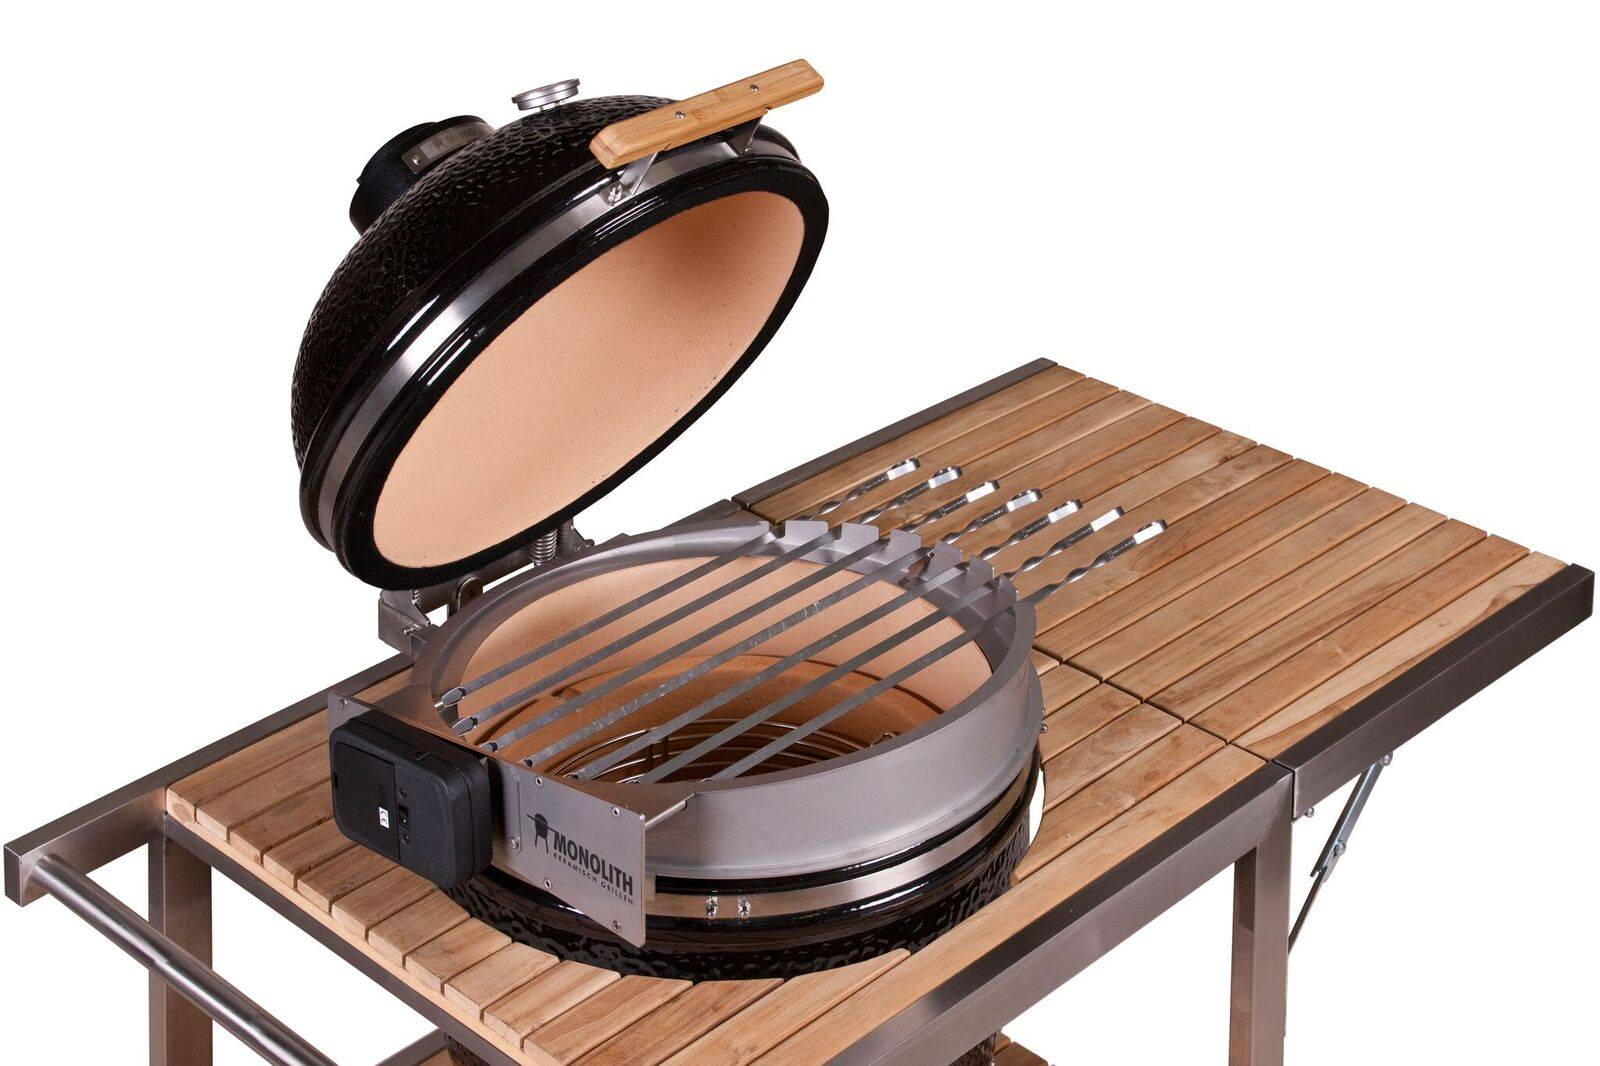 Monolith Kamado Barbecue Smokers And Grills 2019 Review